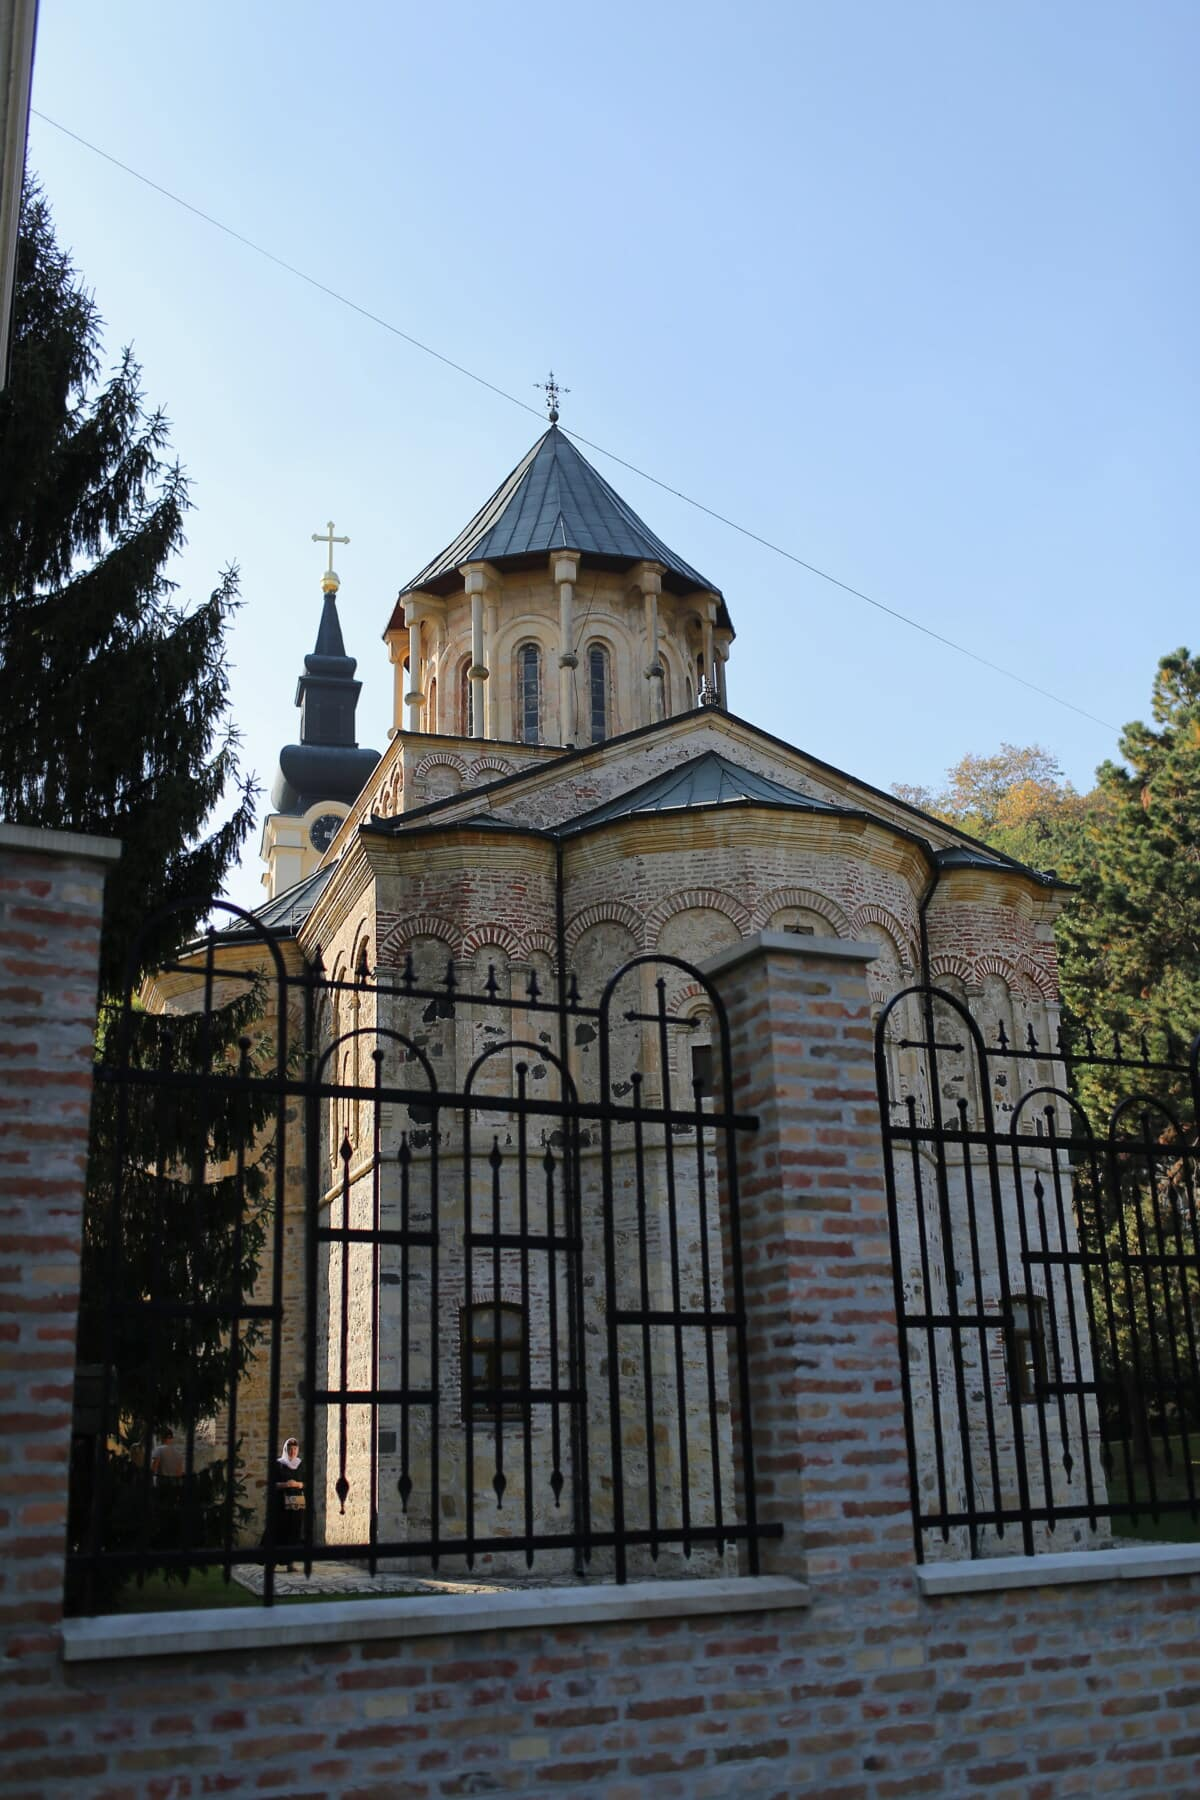 monastery, cast iron, medieval, fence, religious, architectural style, backyard, building, church, cathedral